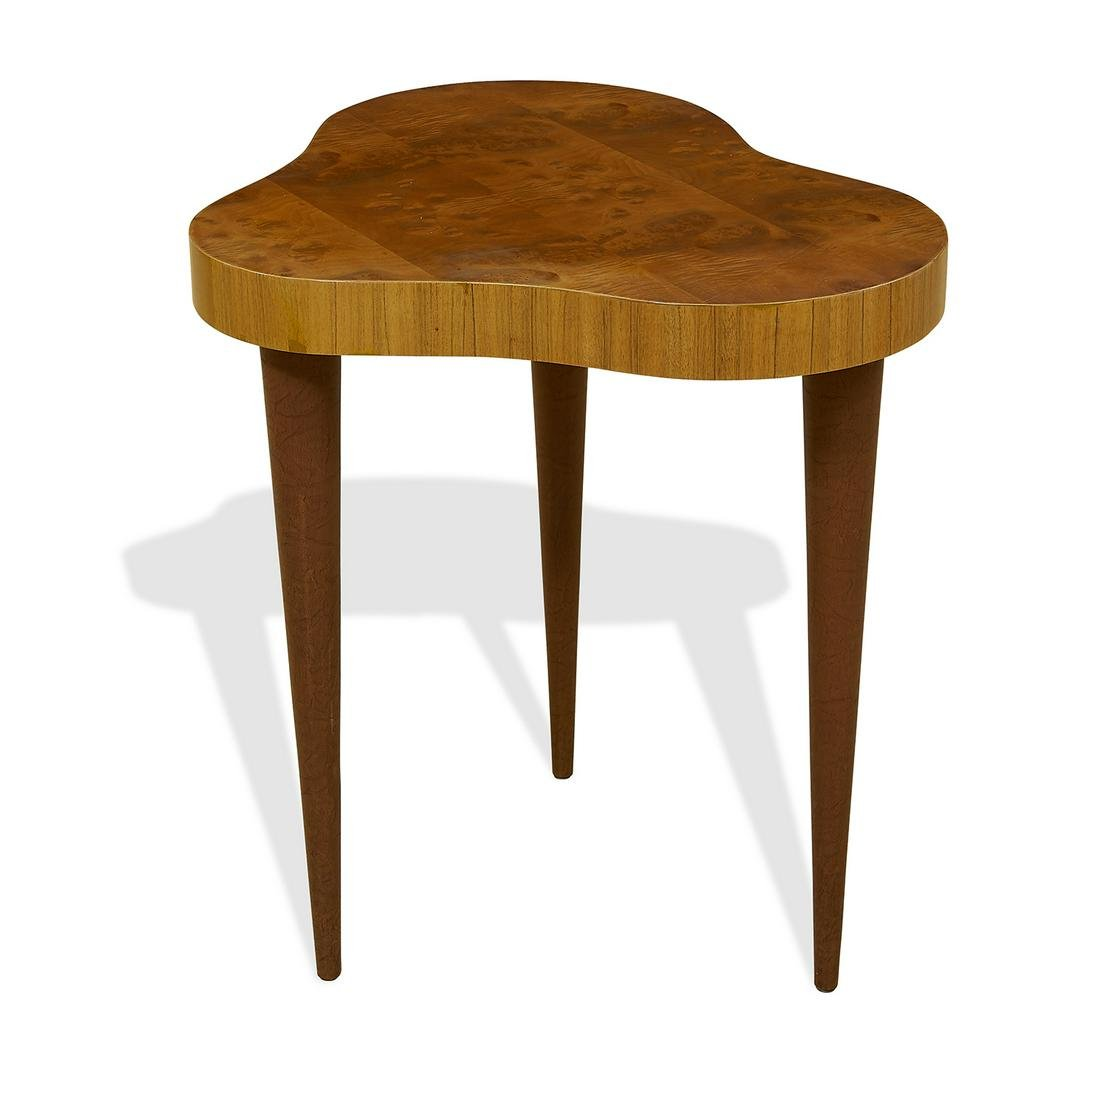 Gilbert Rohde for Herman Miller occasional table